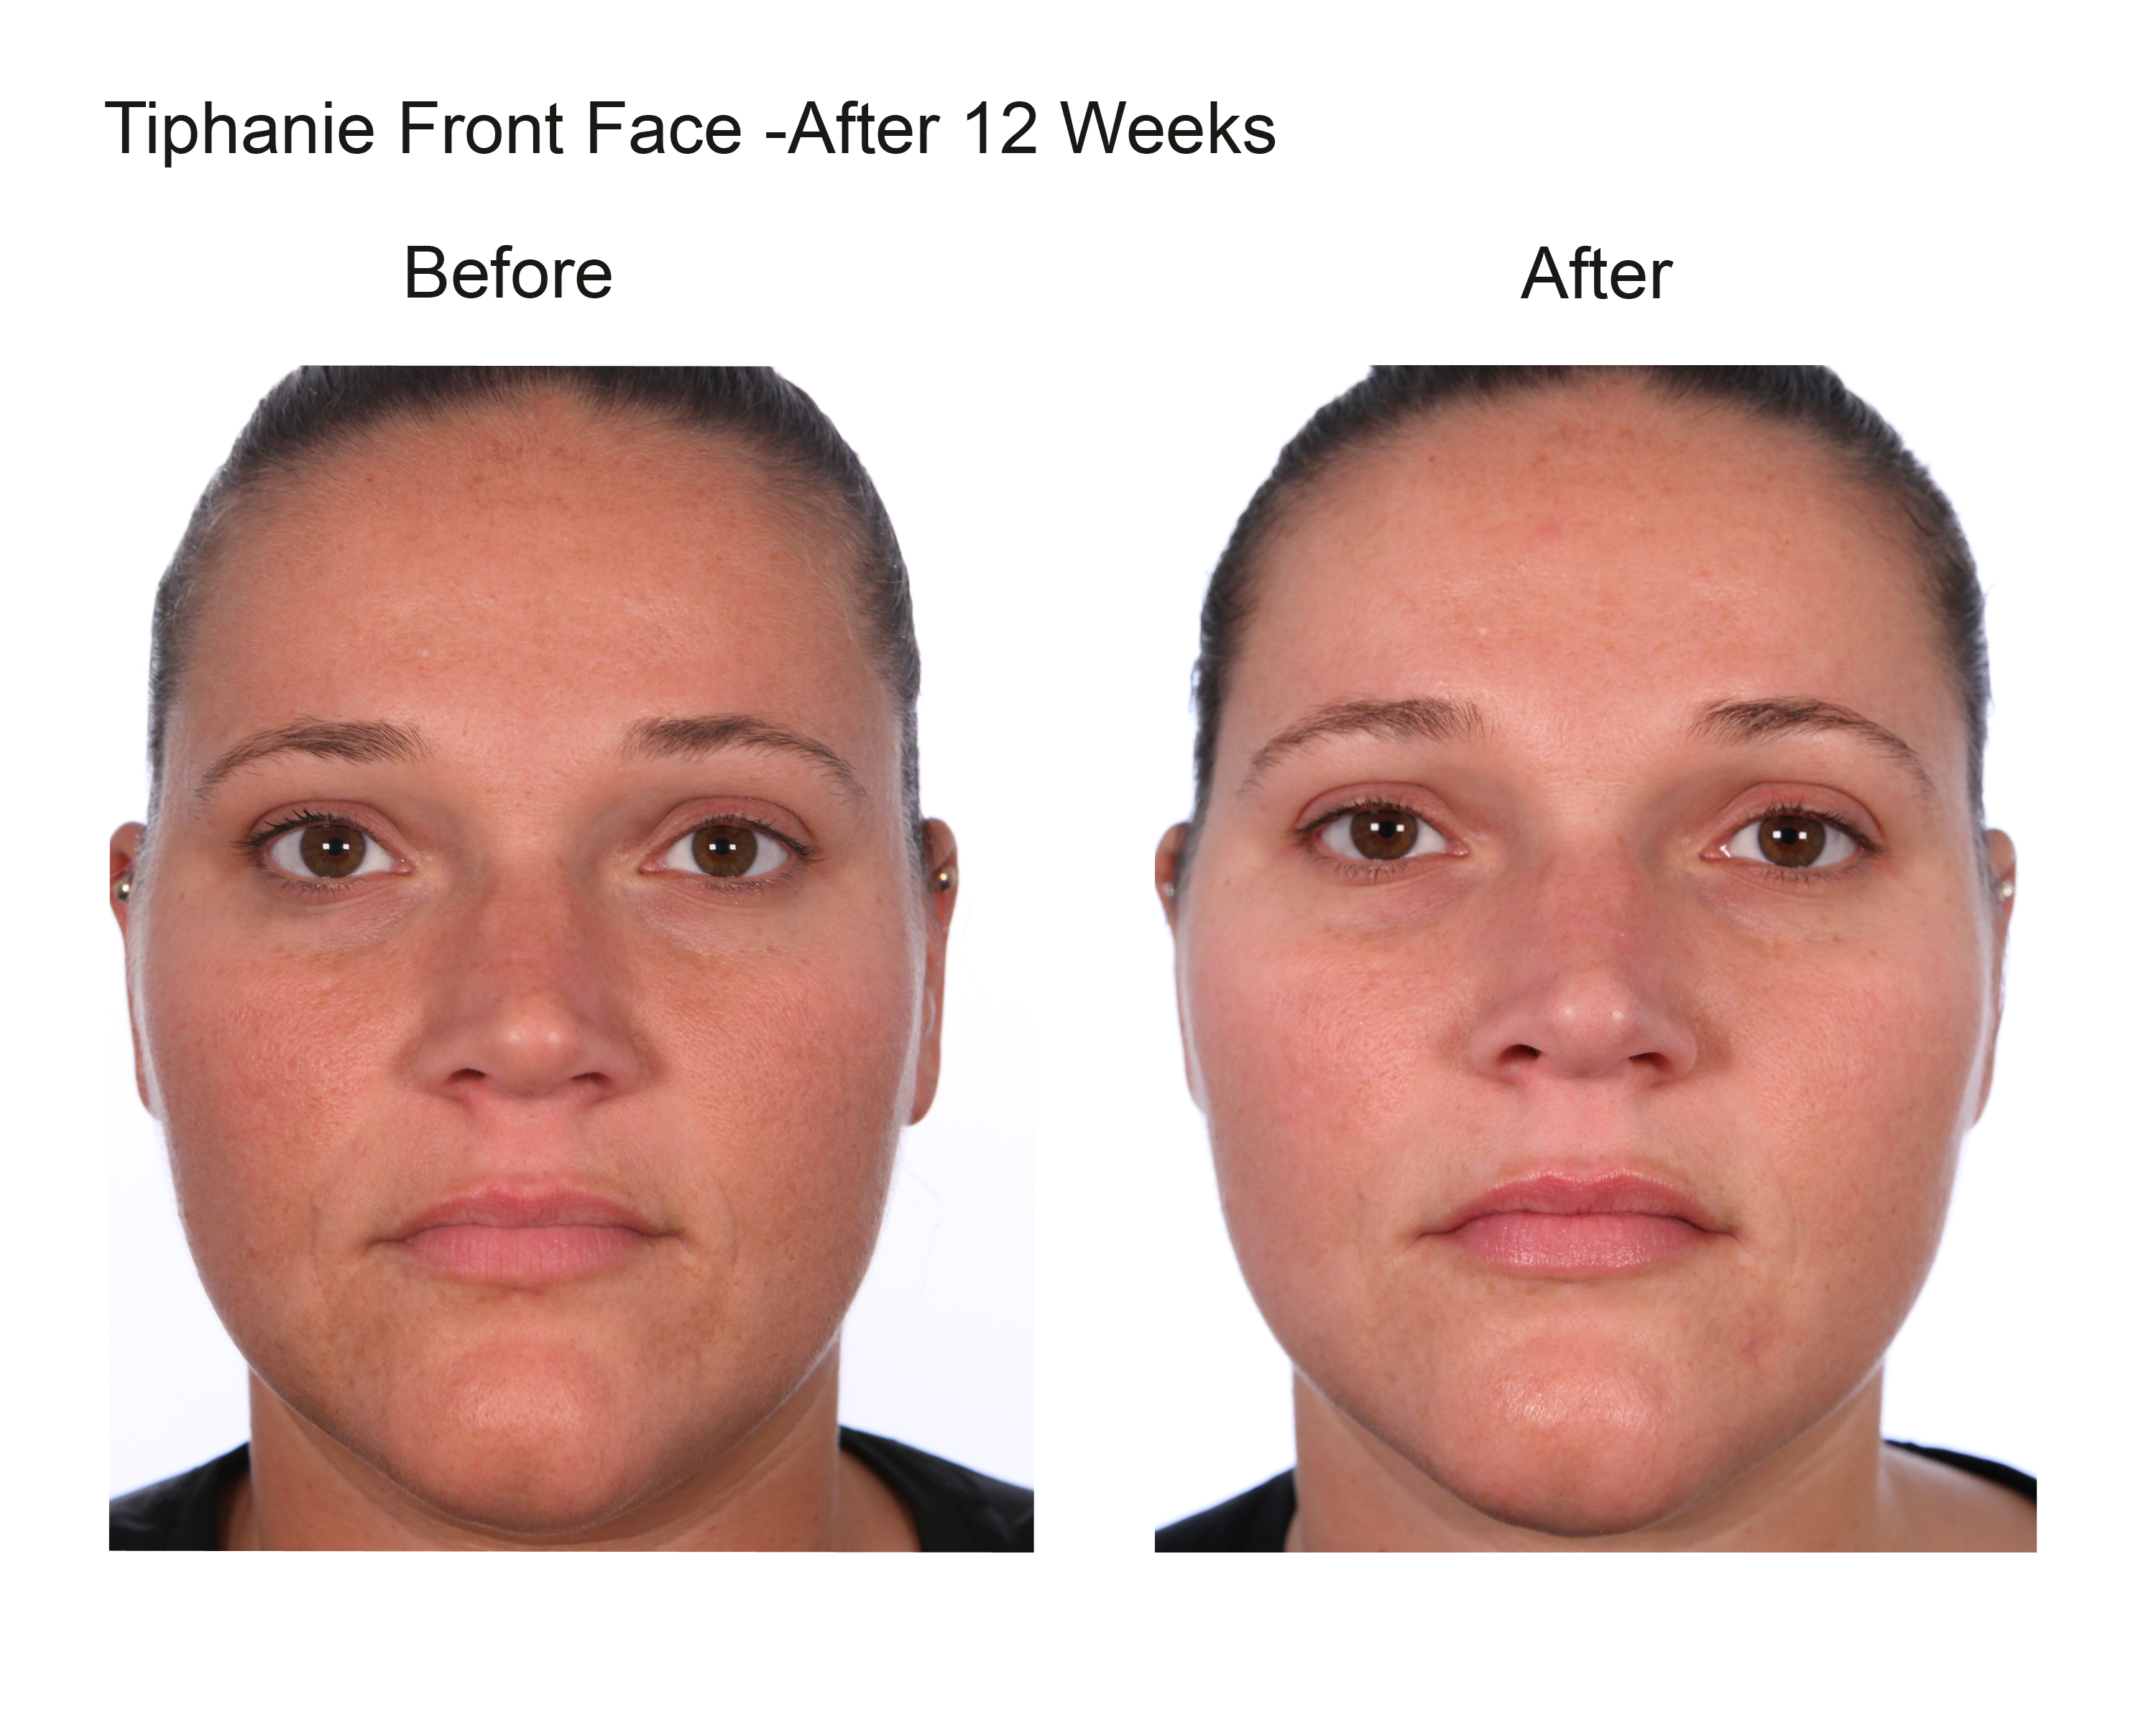 Tiphanie Front Face After 12 Weeks